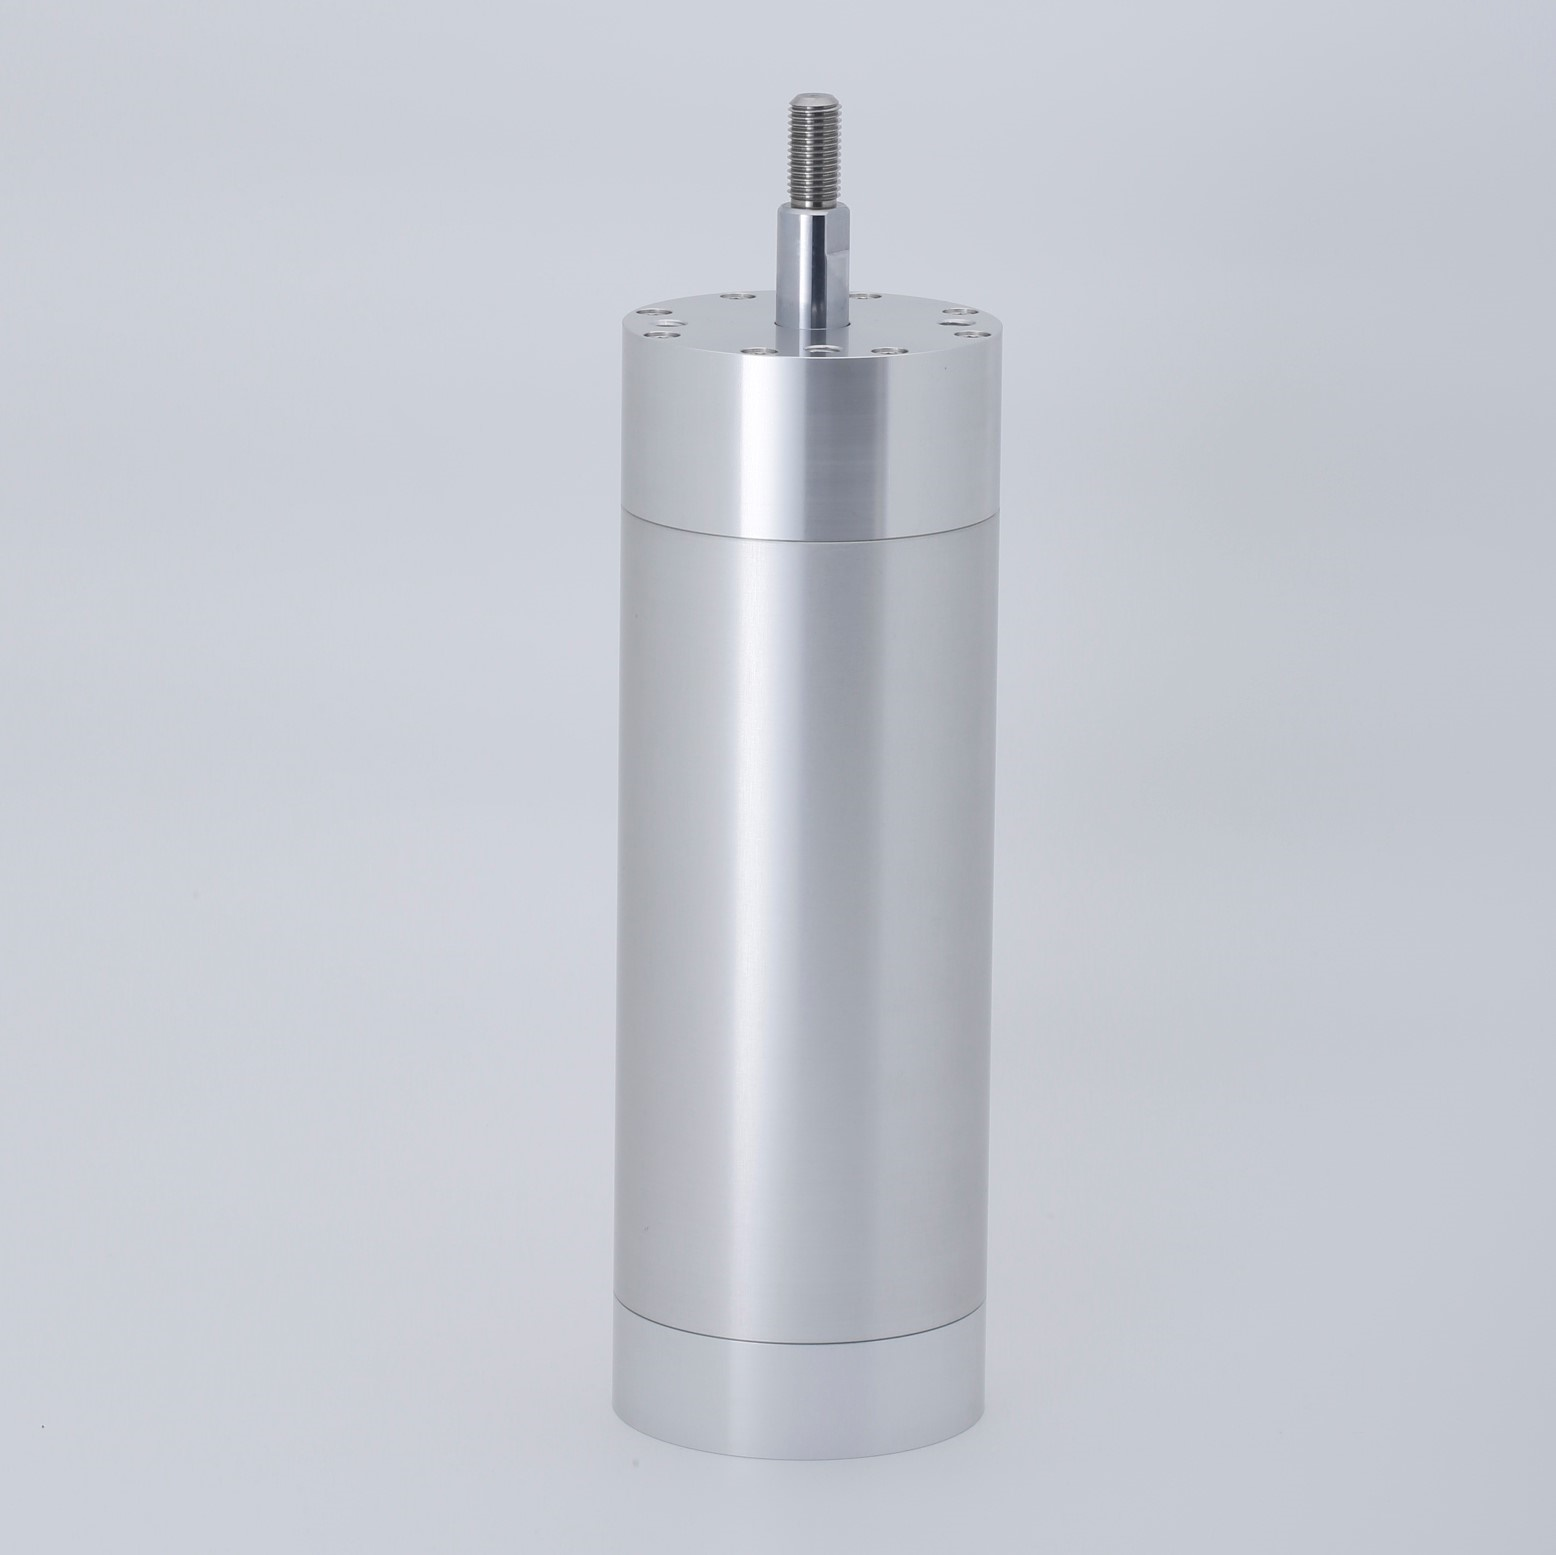 Low friction resin packing cylinder